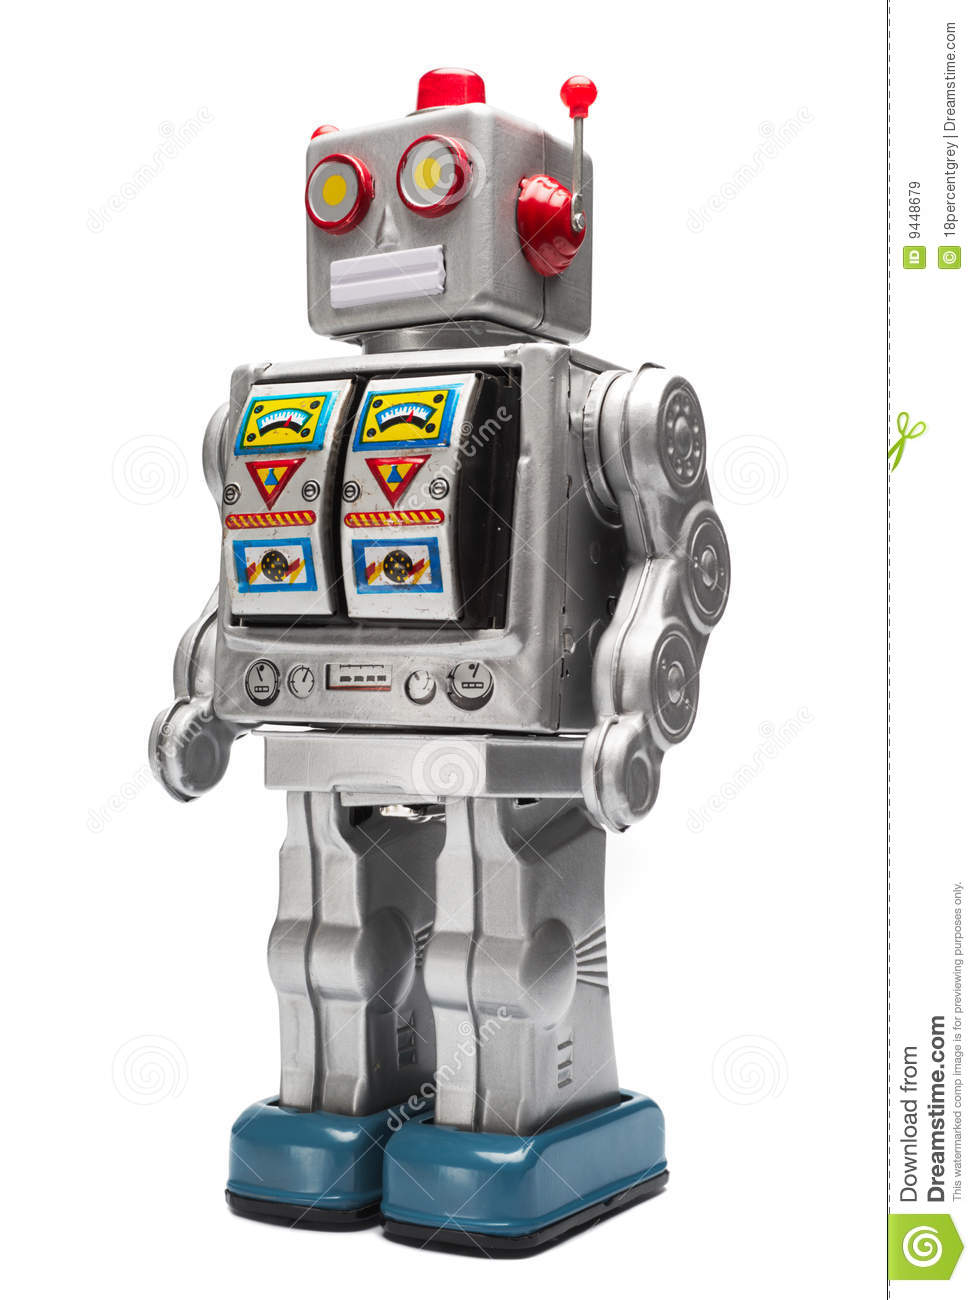 Toy Tin Robot Royalty Free Stock Images - Image: 9448679